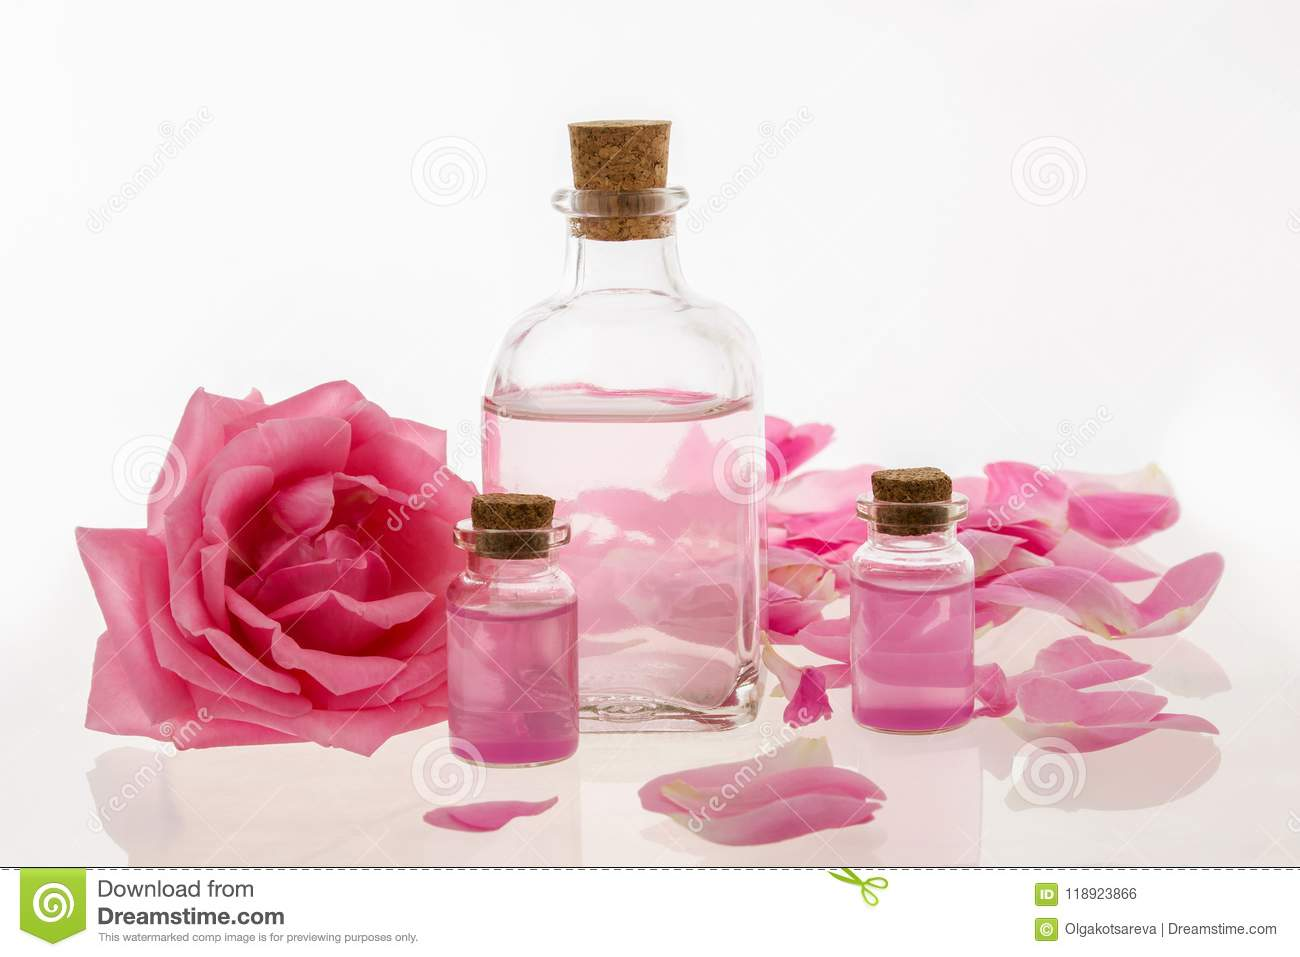 Rose Oil Water Extract With Pink Roses Flowers Essential Oil In